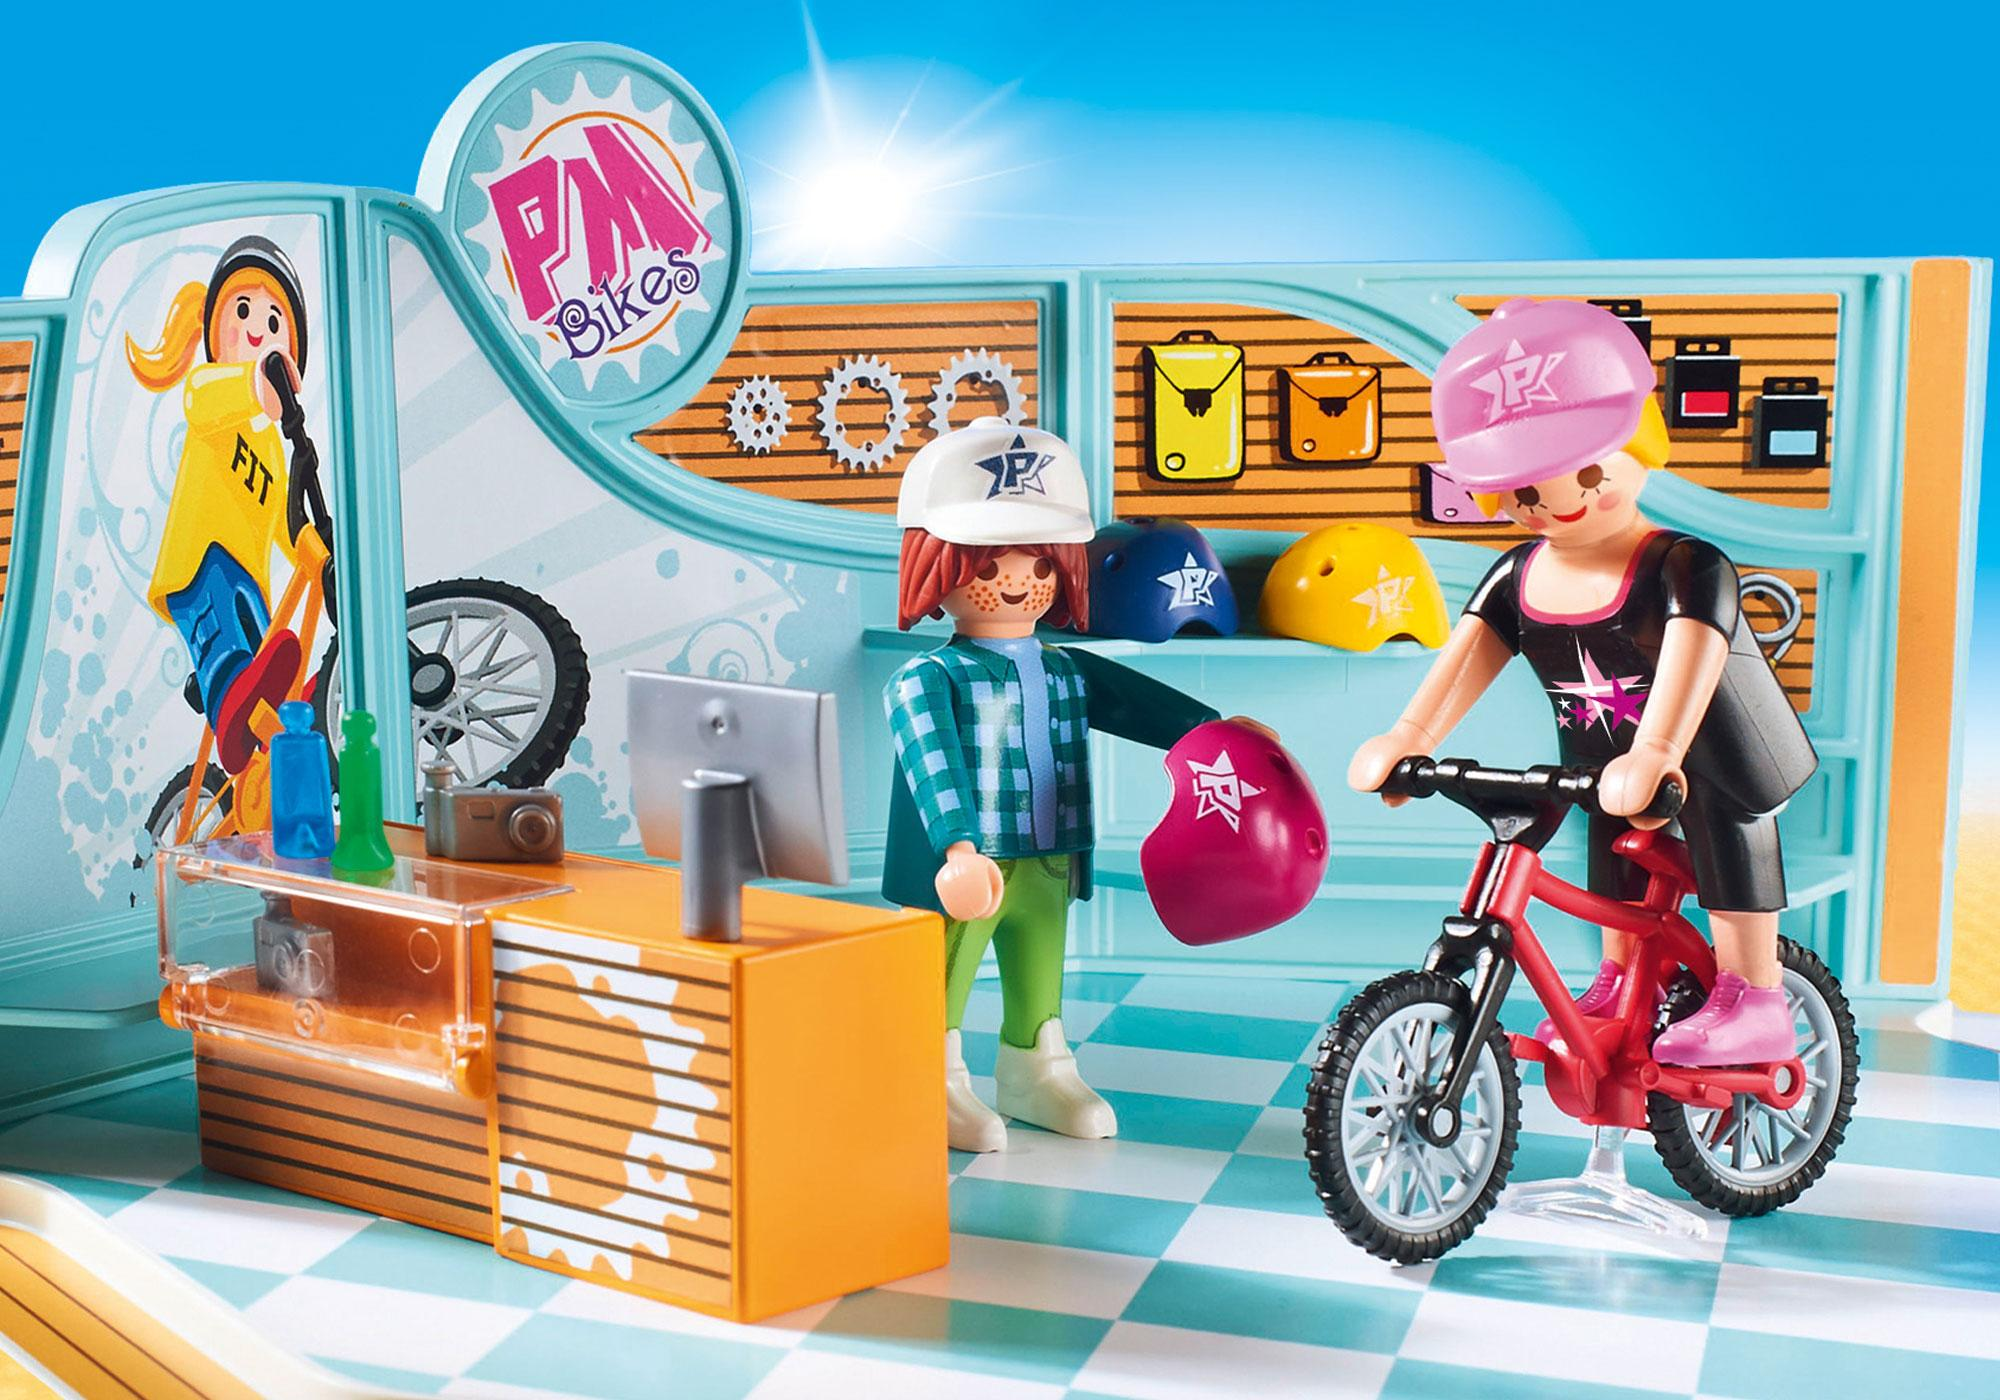 http://media.playmobil.com/i/playmobil/9402_product_extra1/Bike & Skate Shop